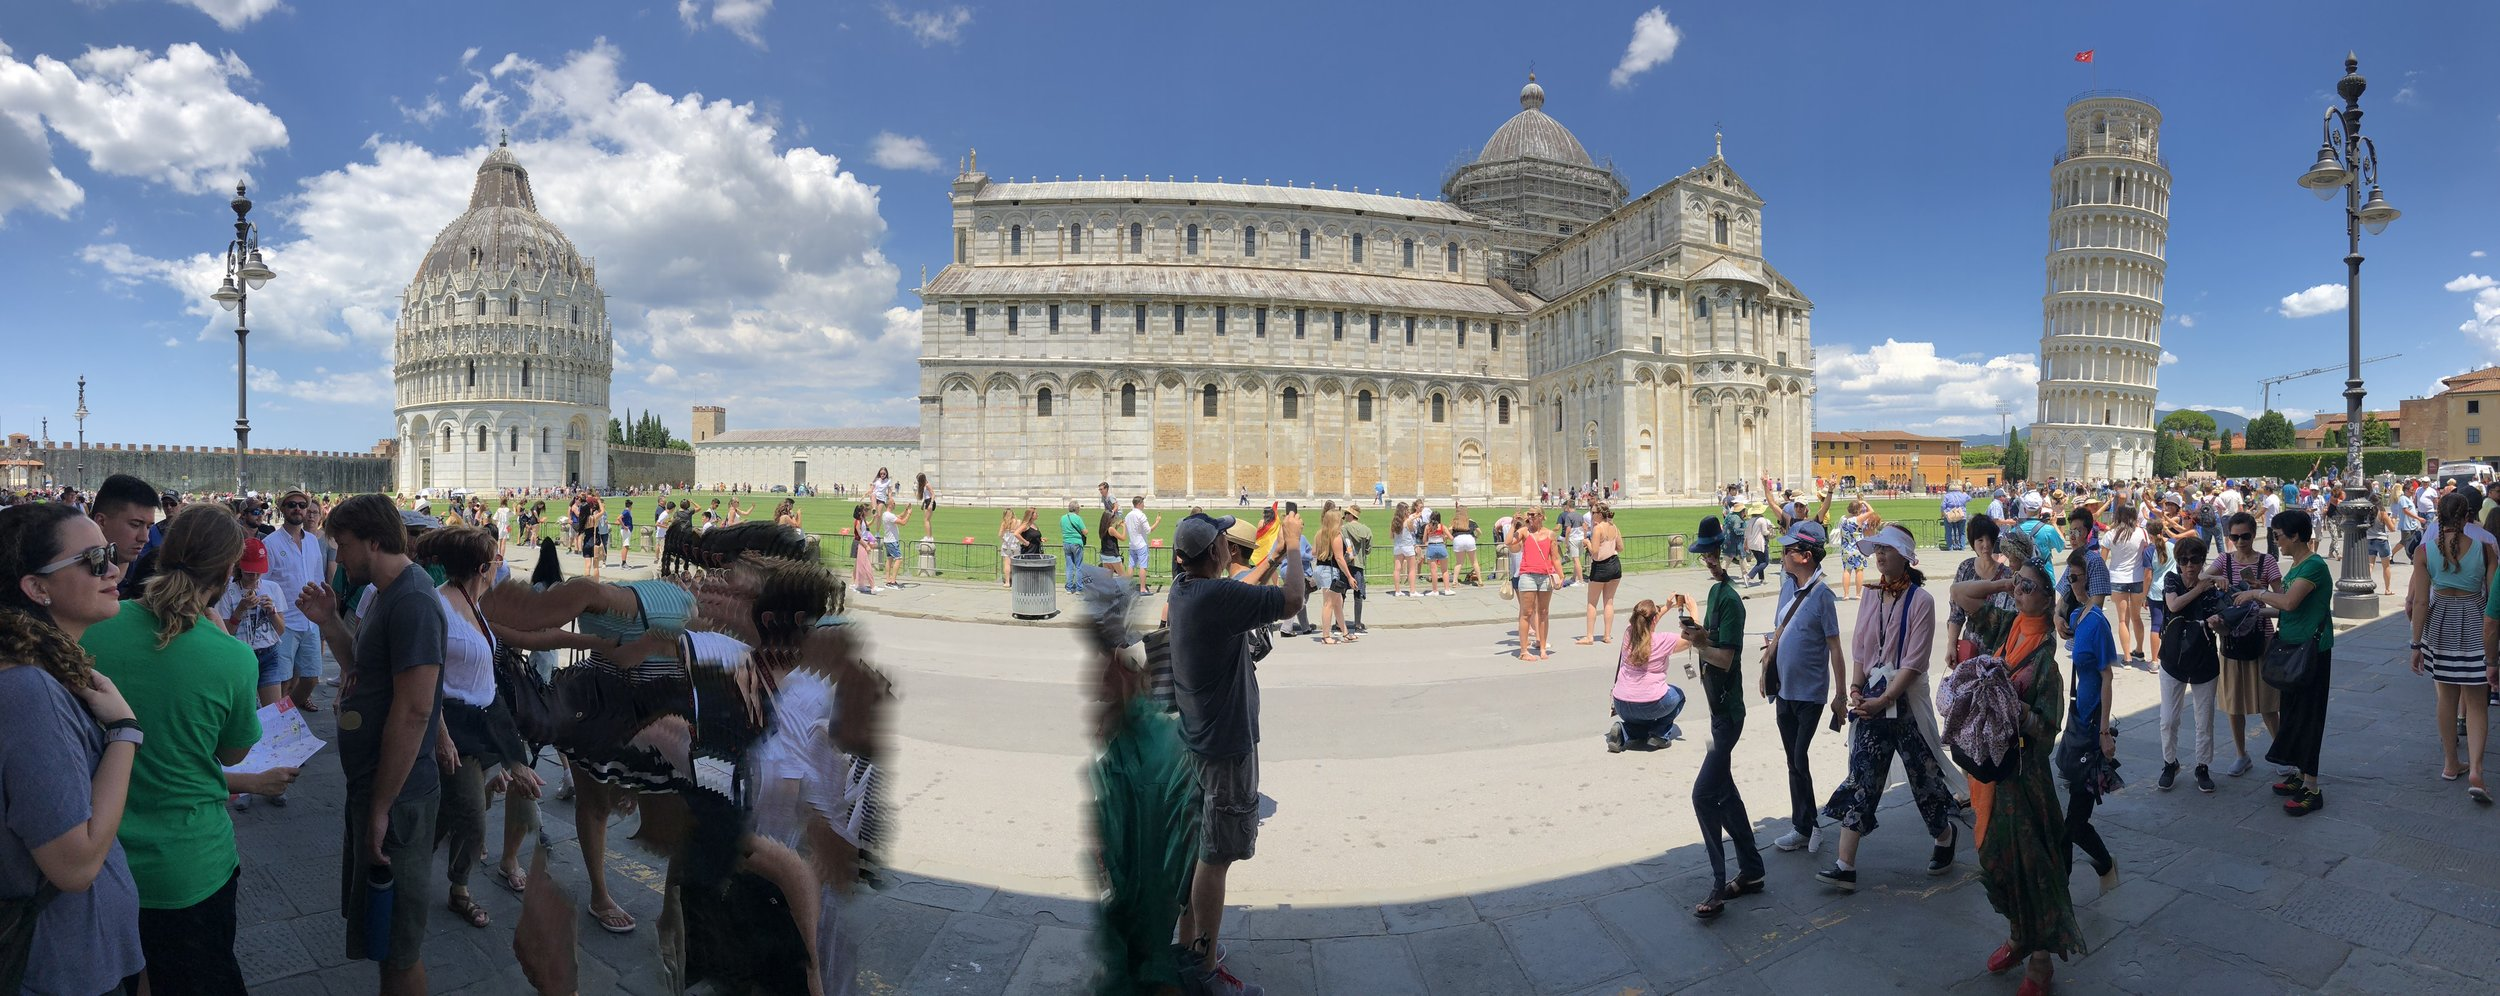 Piazza dei Miracoli - captured in an almost-miraculous panoramic shot.